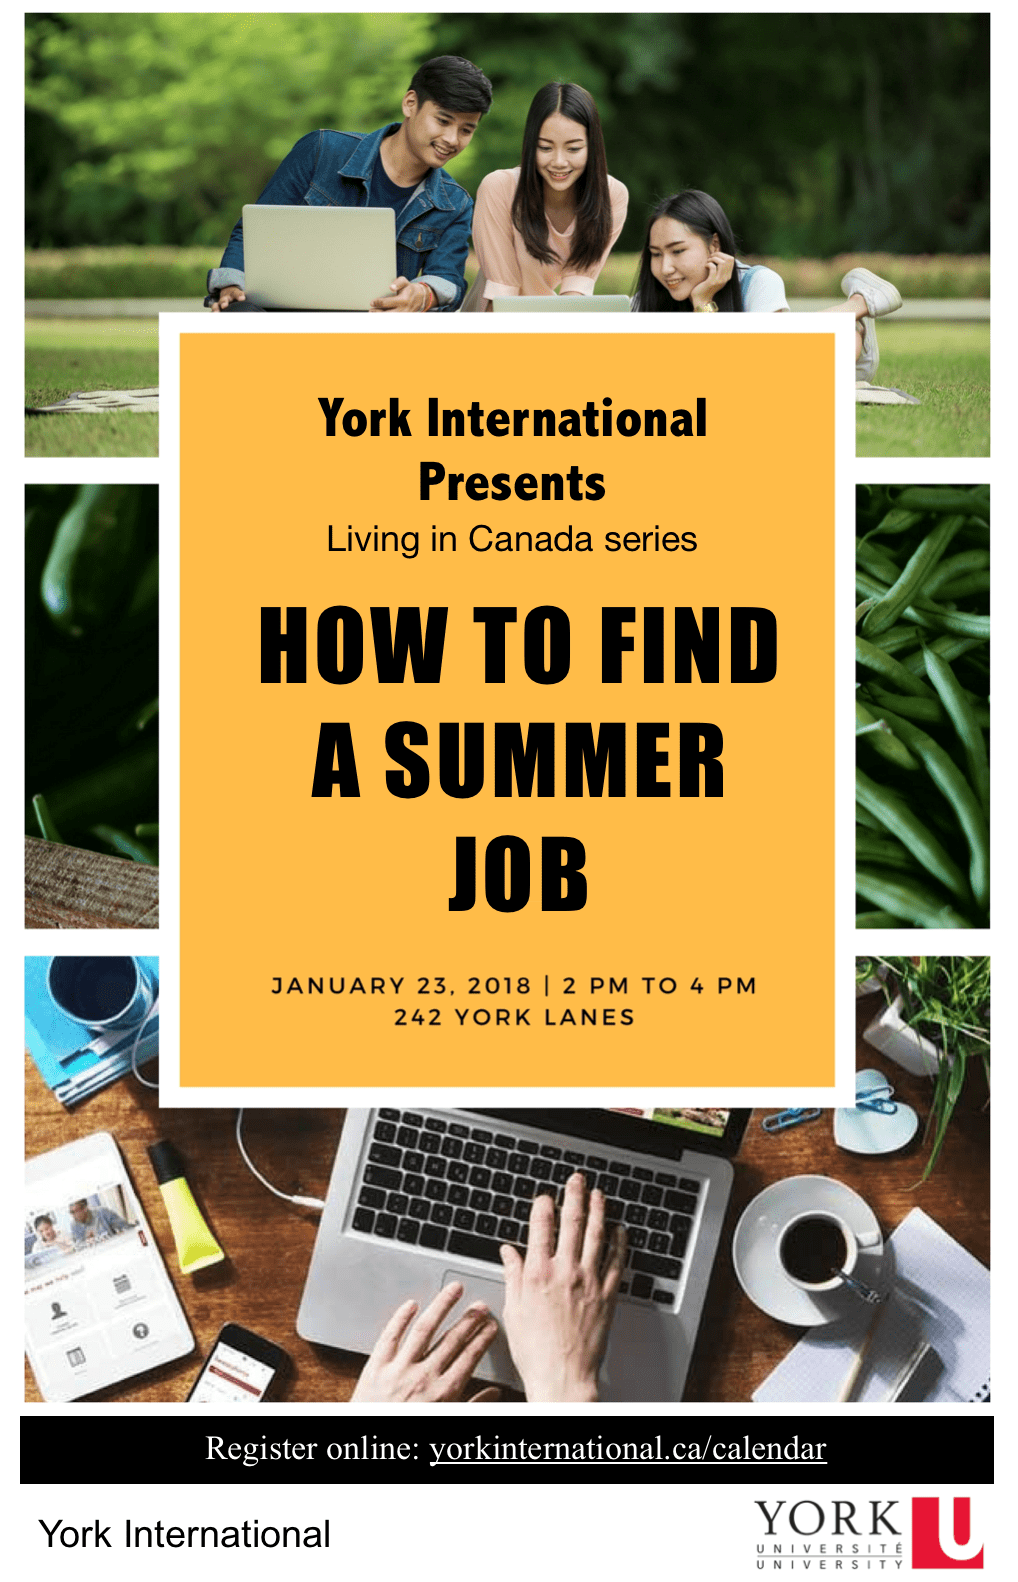 How to Find a Summer Job Workshop @ York Lanes, Room 242 (second floor)